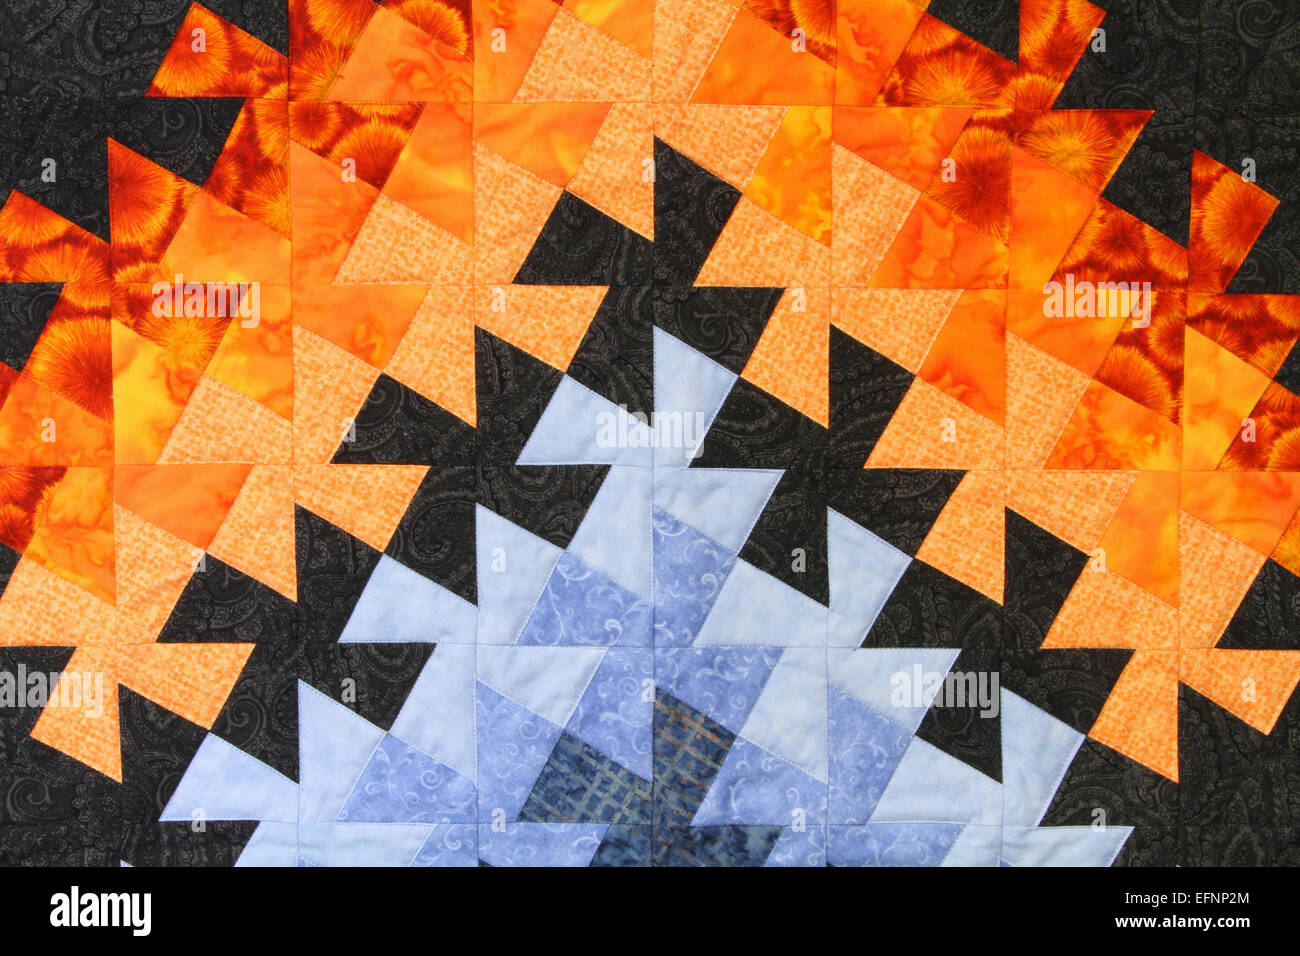 Quilt pattern. Canfield Fair. Mahoning County Fair. Canfield, Youngstown, Ohio, USA. - Stock Image